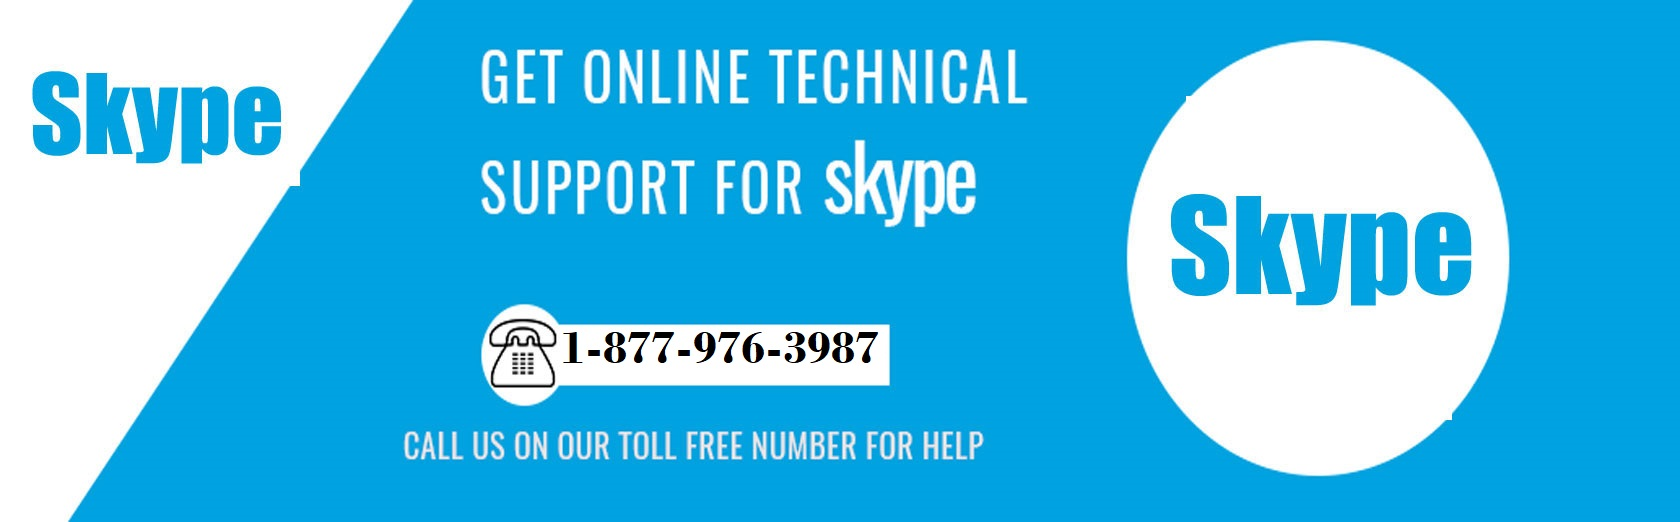 Skype Customer Support Phone Number USA